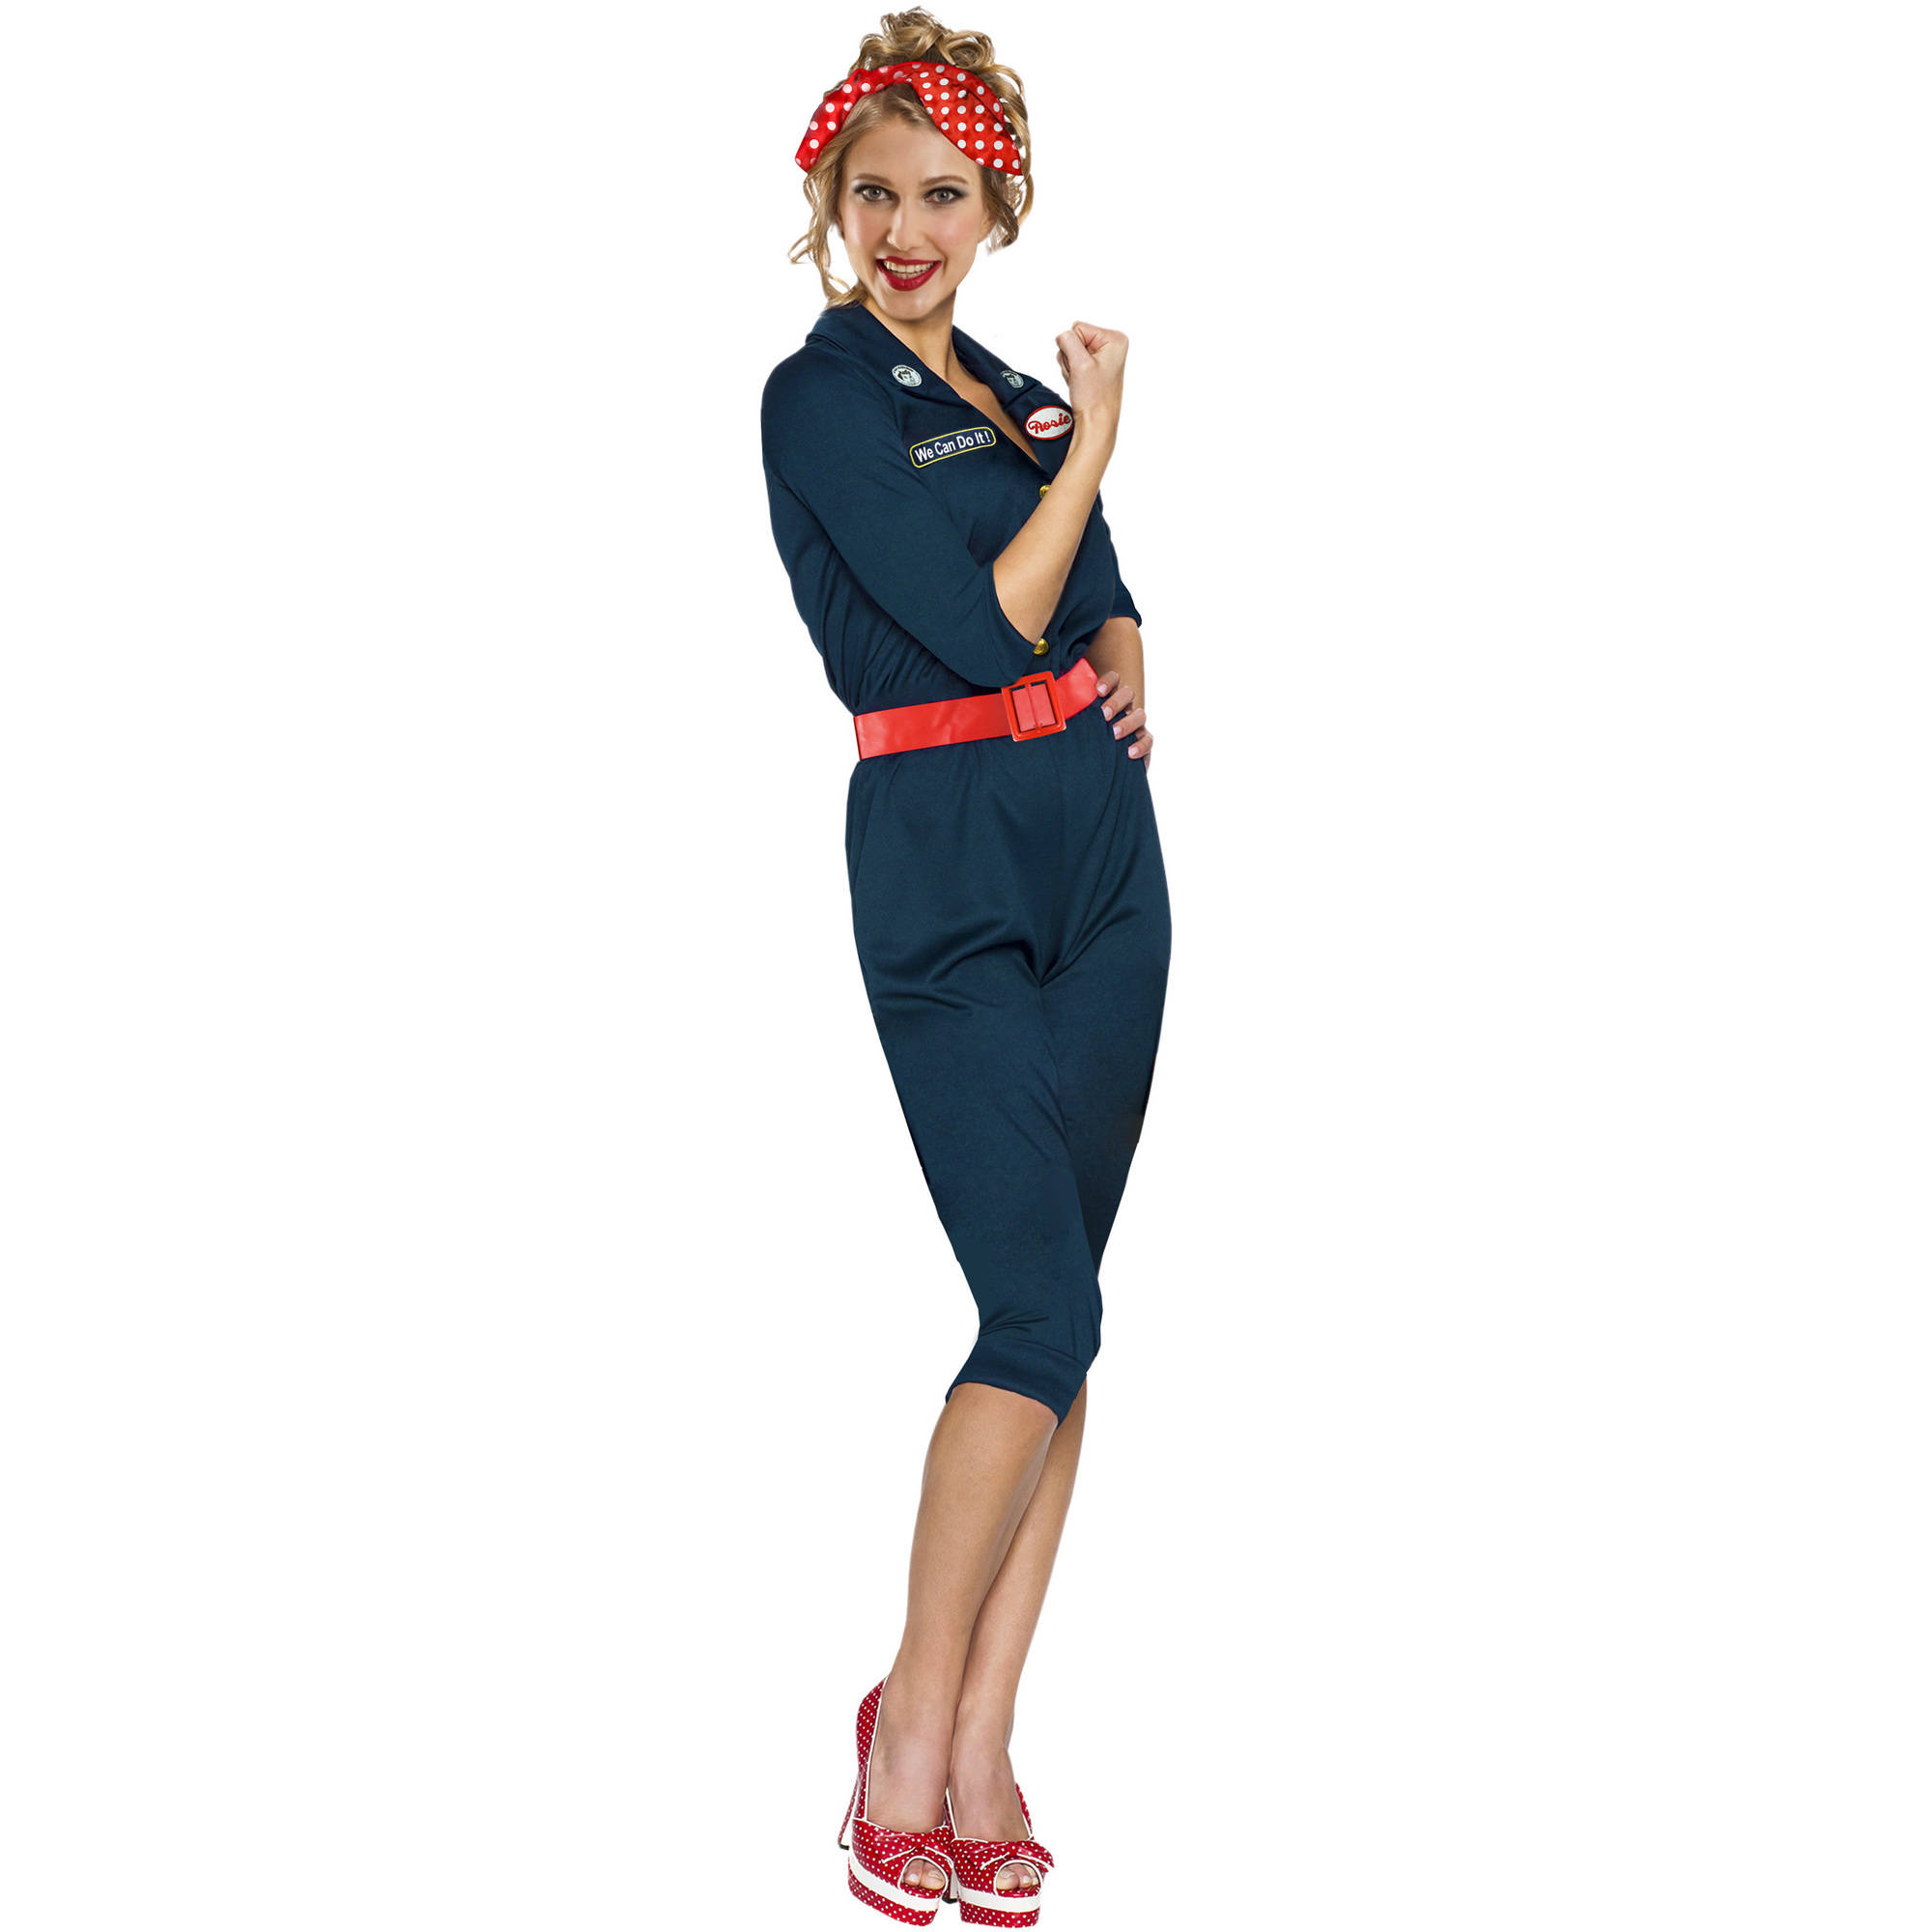 rosie the riveter adult halloween costume walmartcom - Rosie The Riveter Halloween Costume